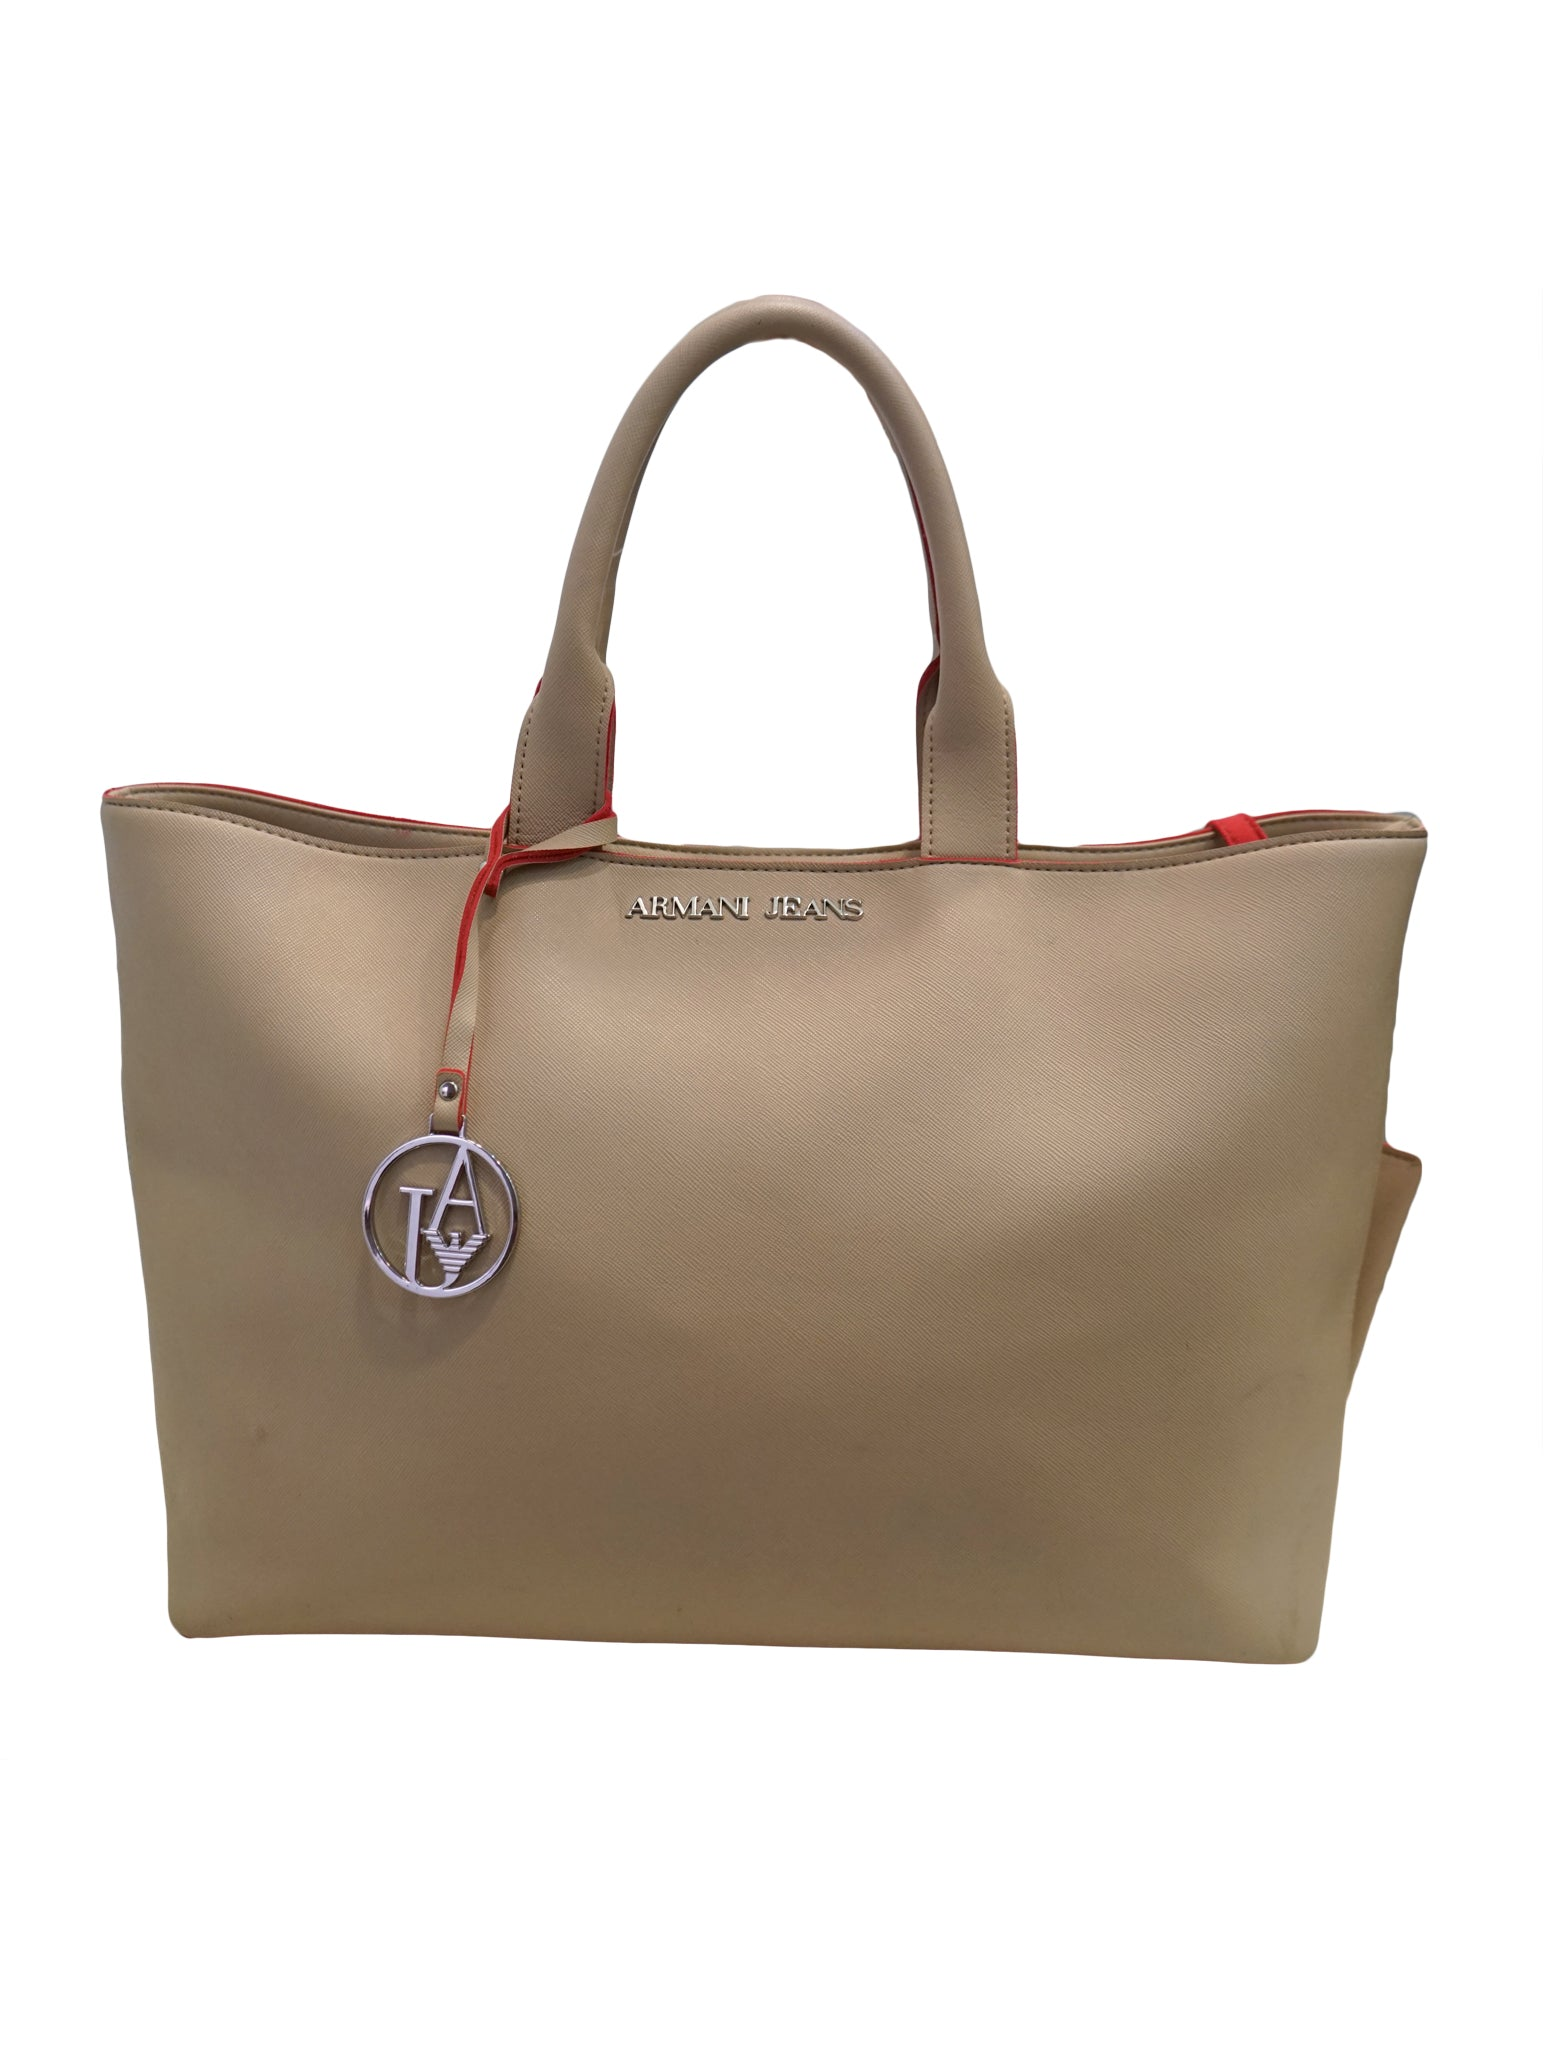 ARMANI JEANS SAFFIANO TOTE NUDO - kidsstyleforless